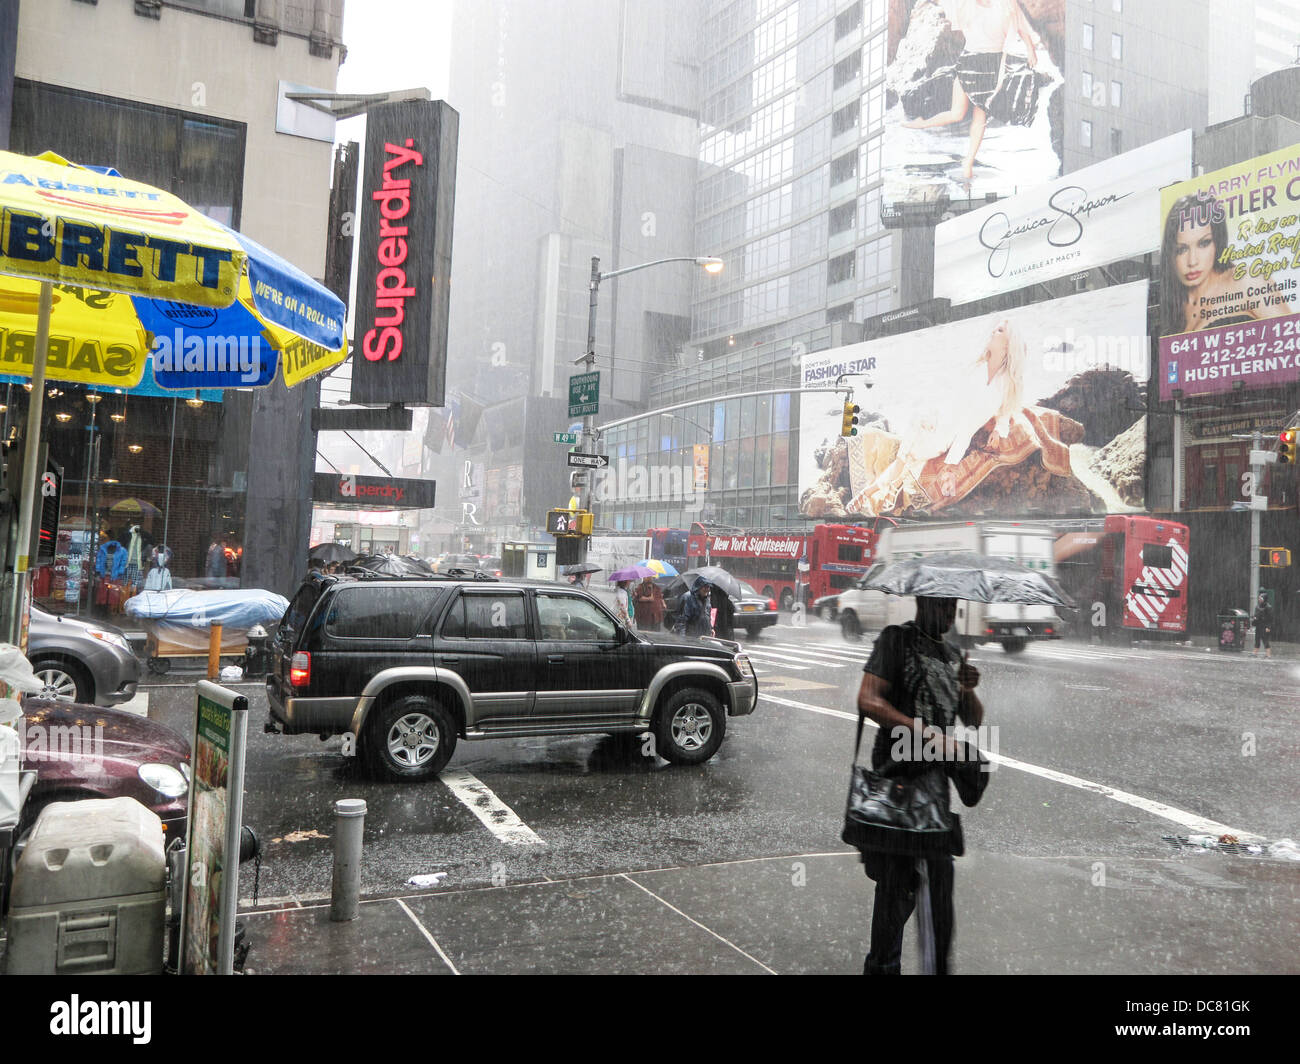 pedestrians brave awful weather as drenching summer rainstorm hits New York City & heavy rain veils advertising - Stock Image